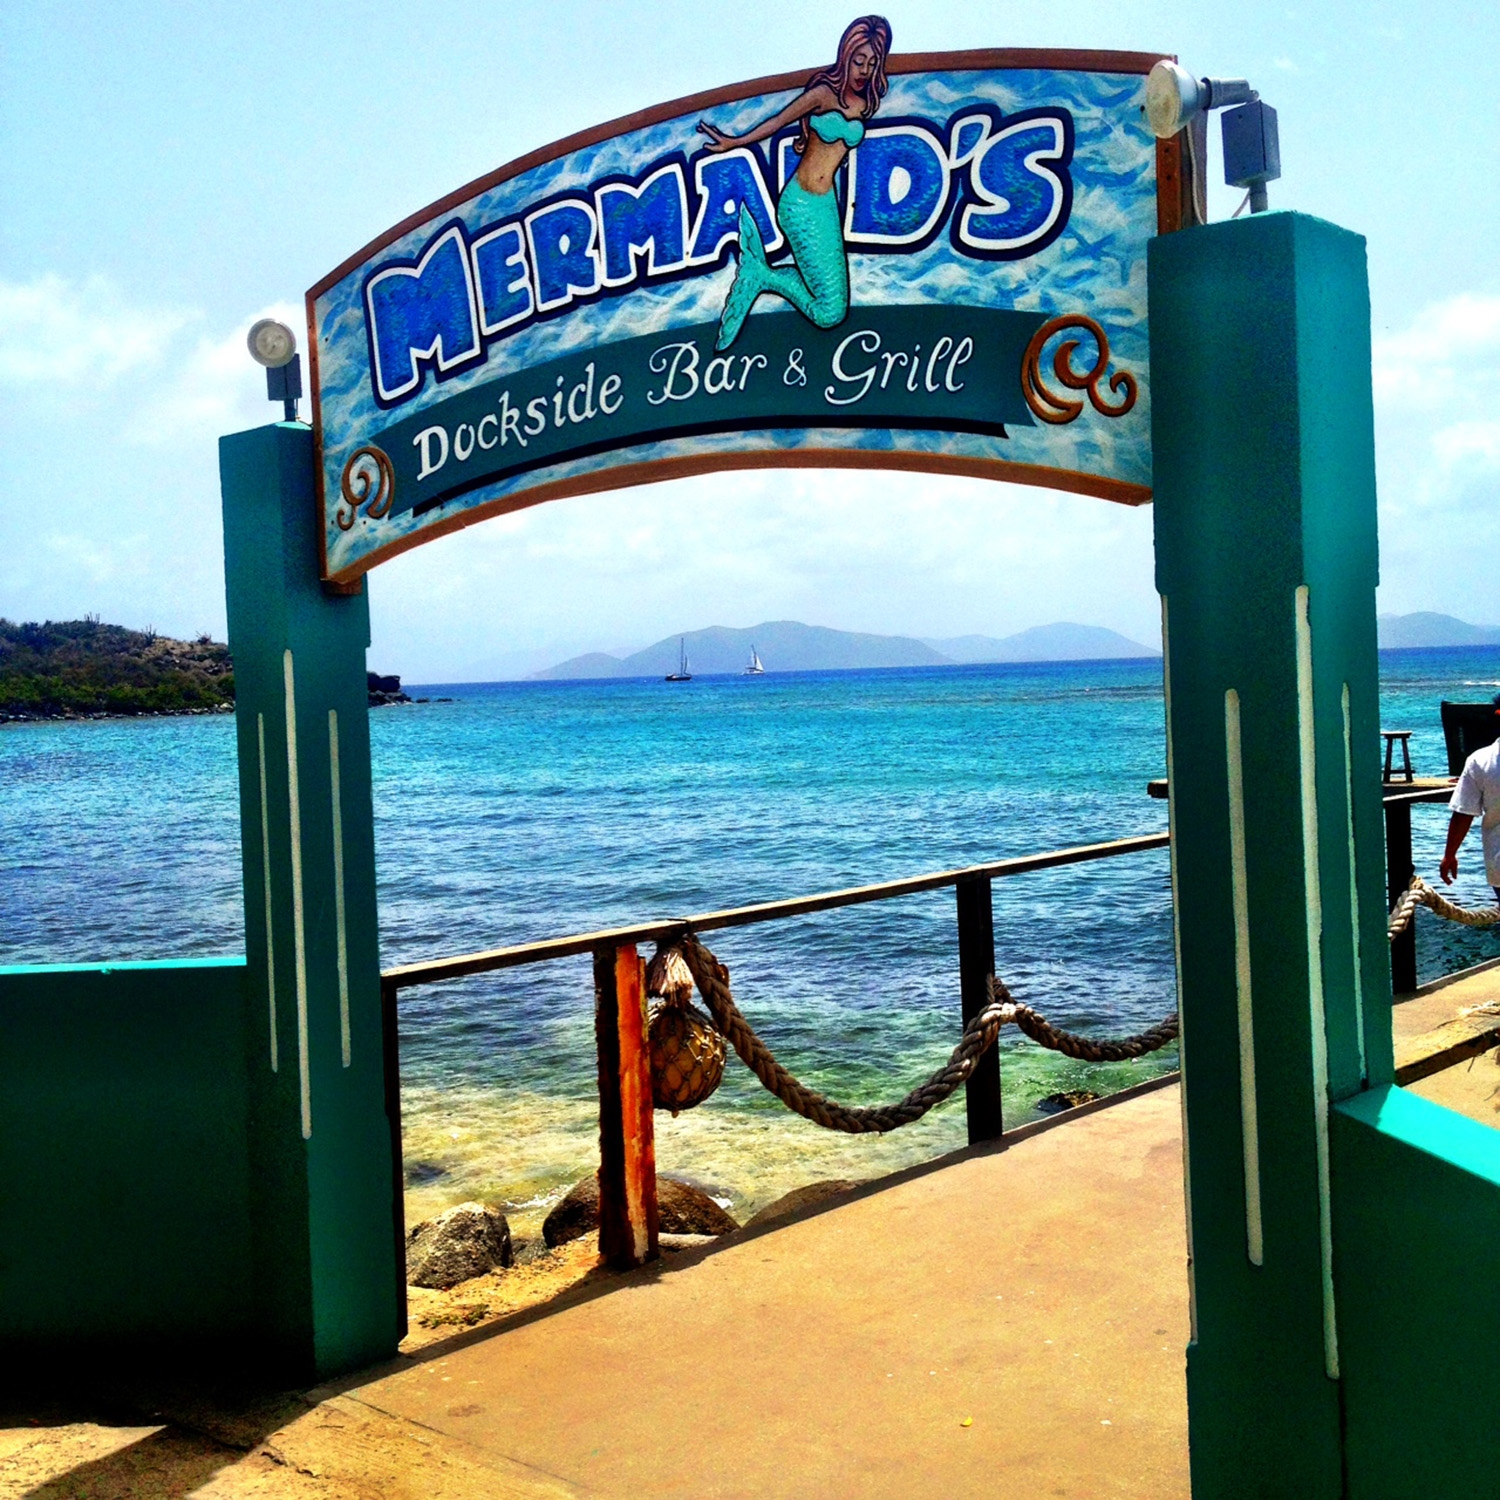 An archway advertising 'Mermaid's Dockside Bar and Grill' with a walkway above the ocean